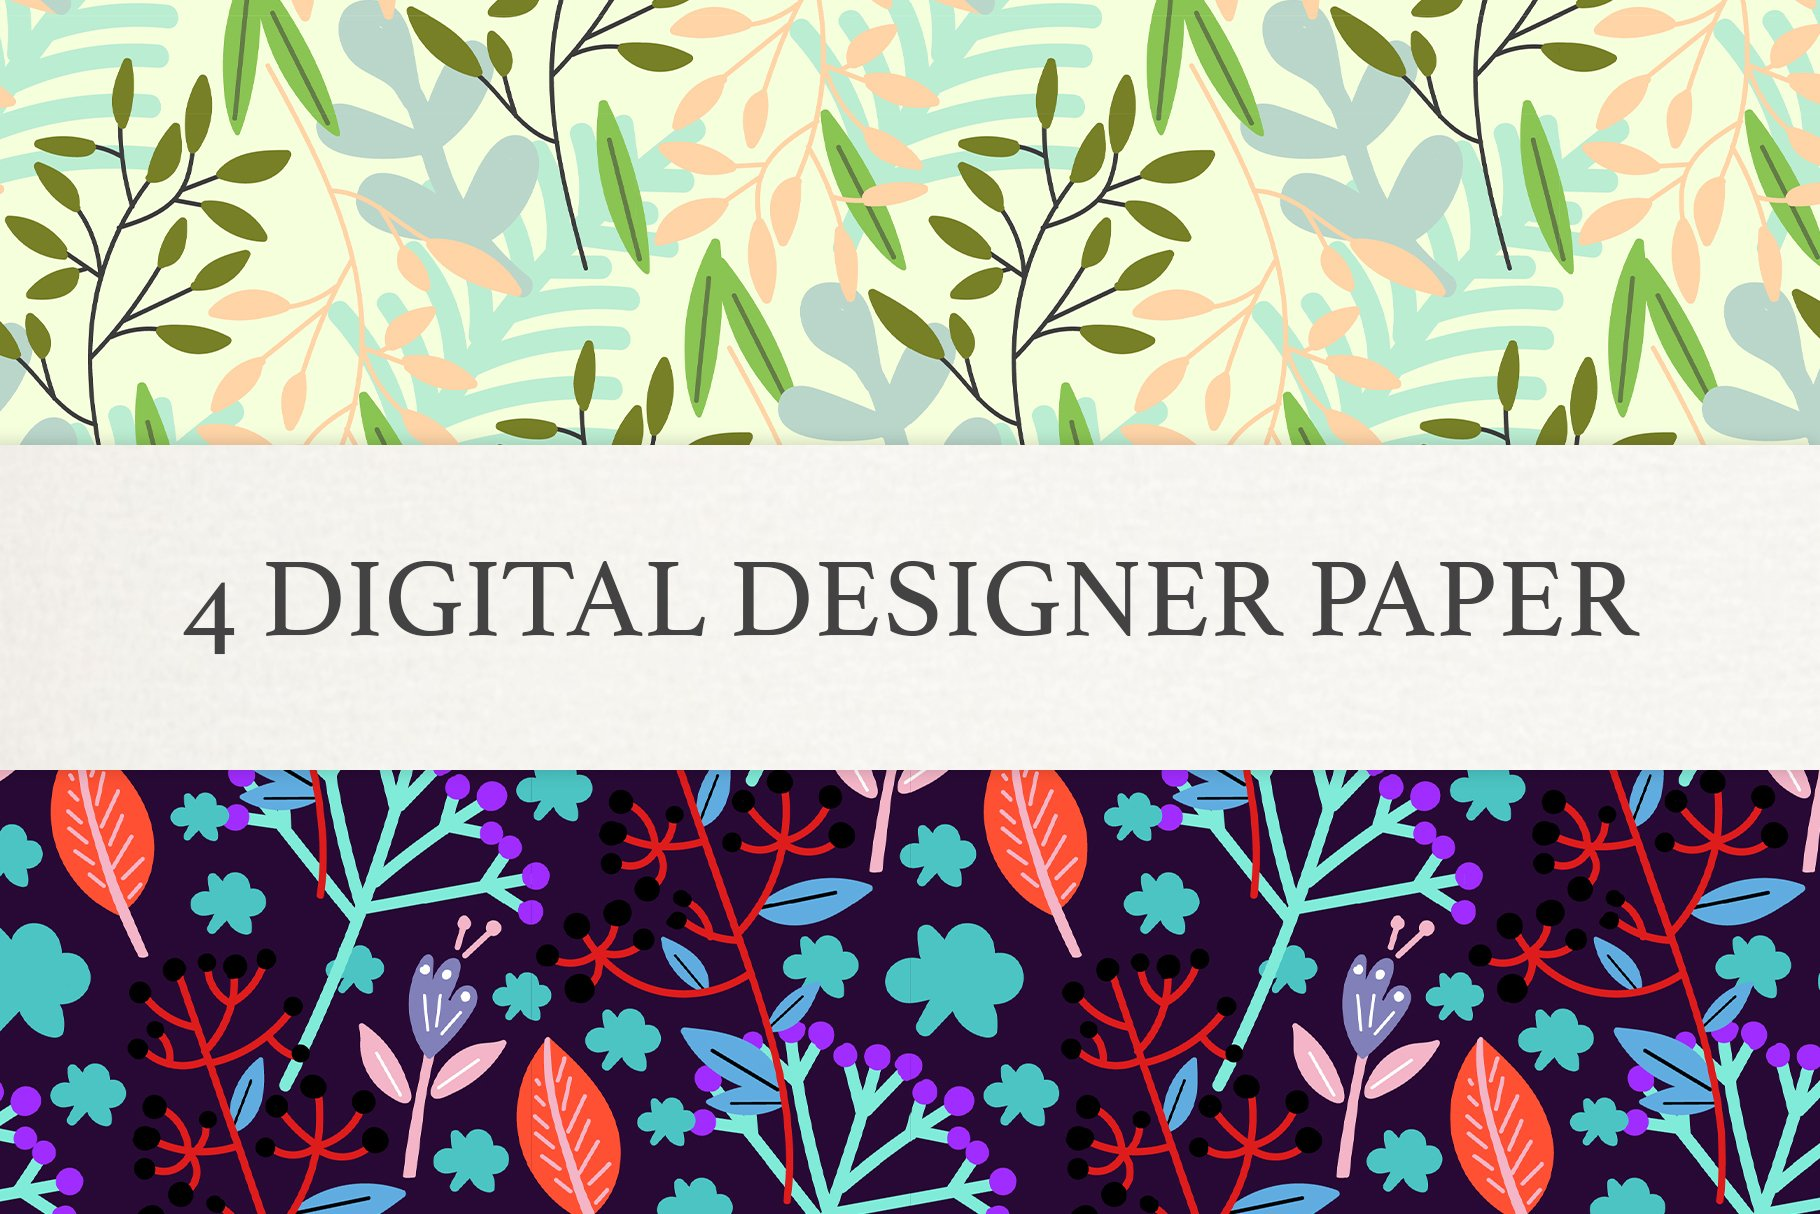 Floral Digital Paper, Scrapbook Papers, Seamless Patterns example image 2